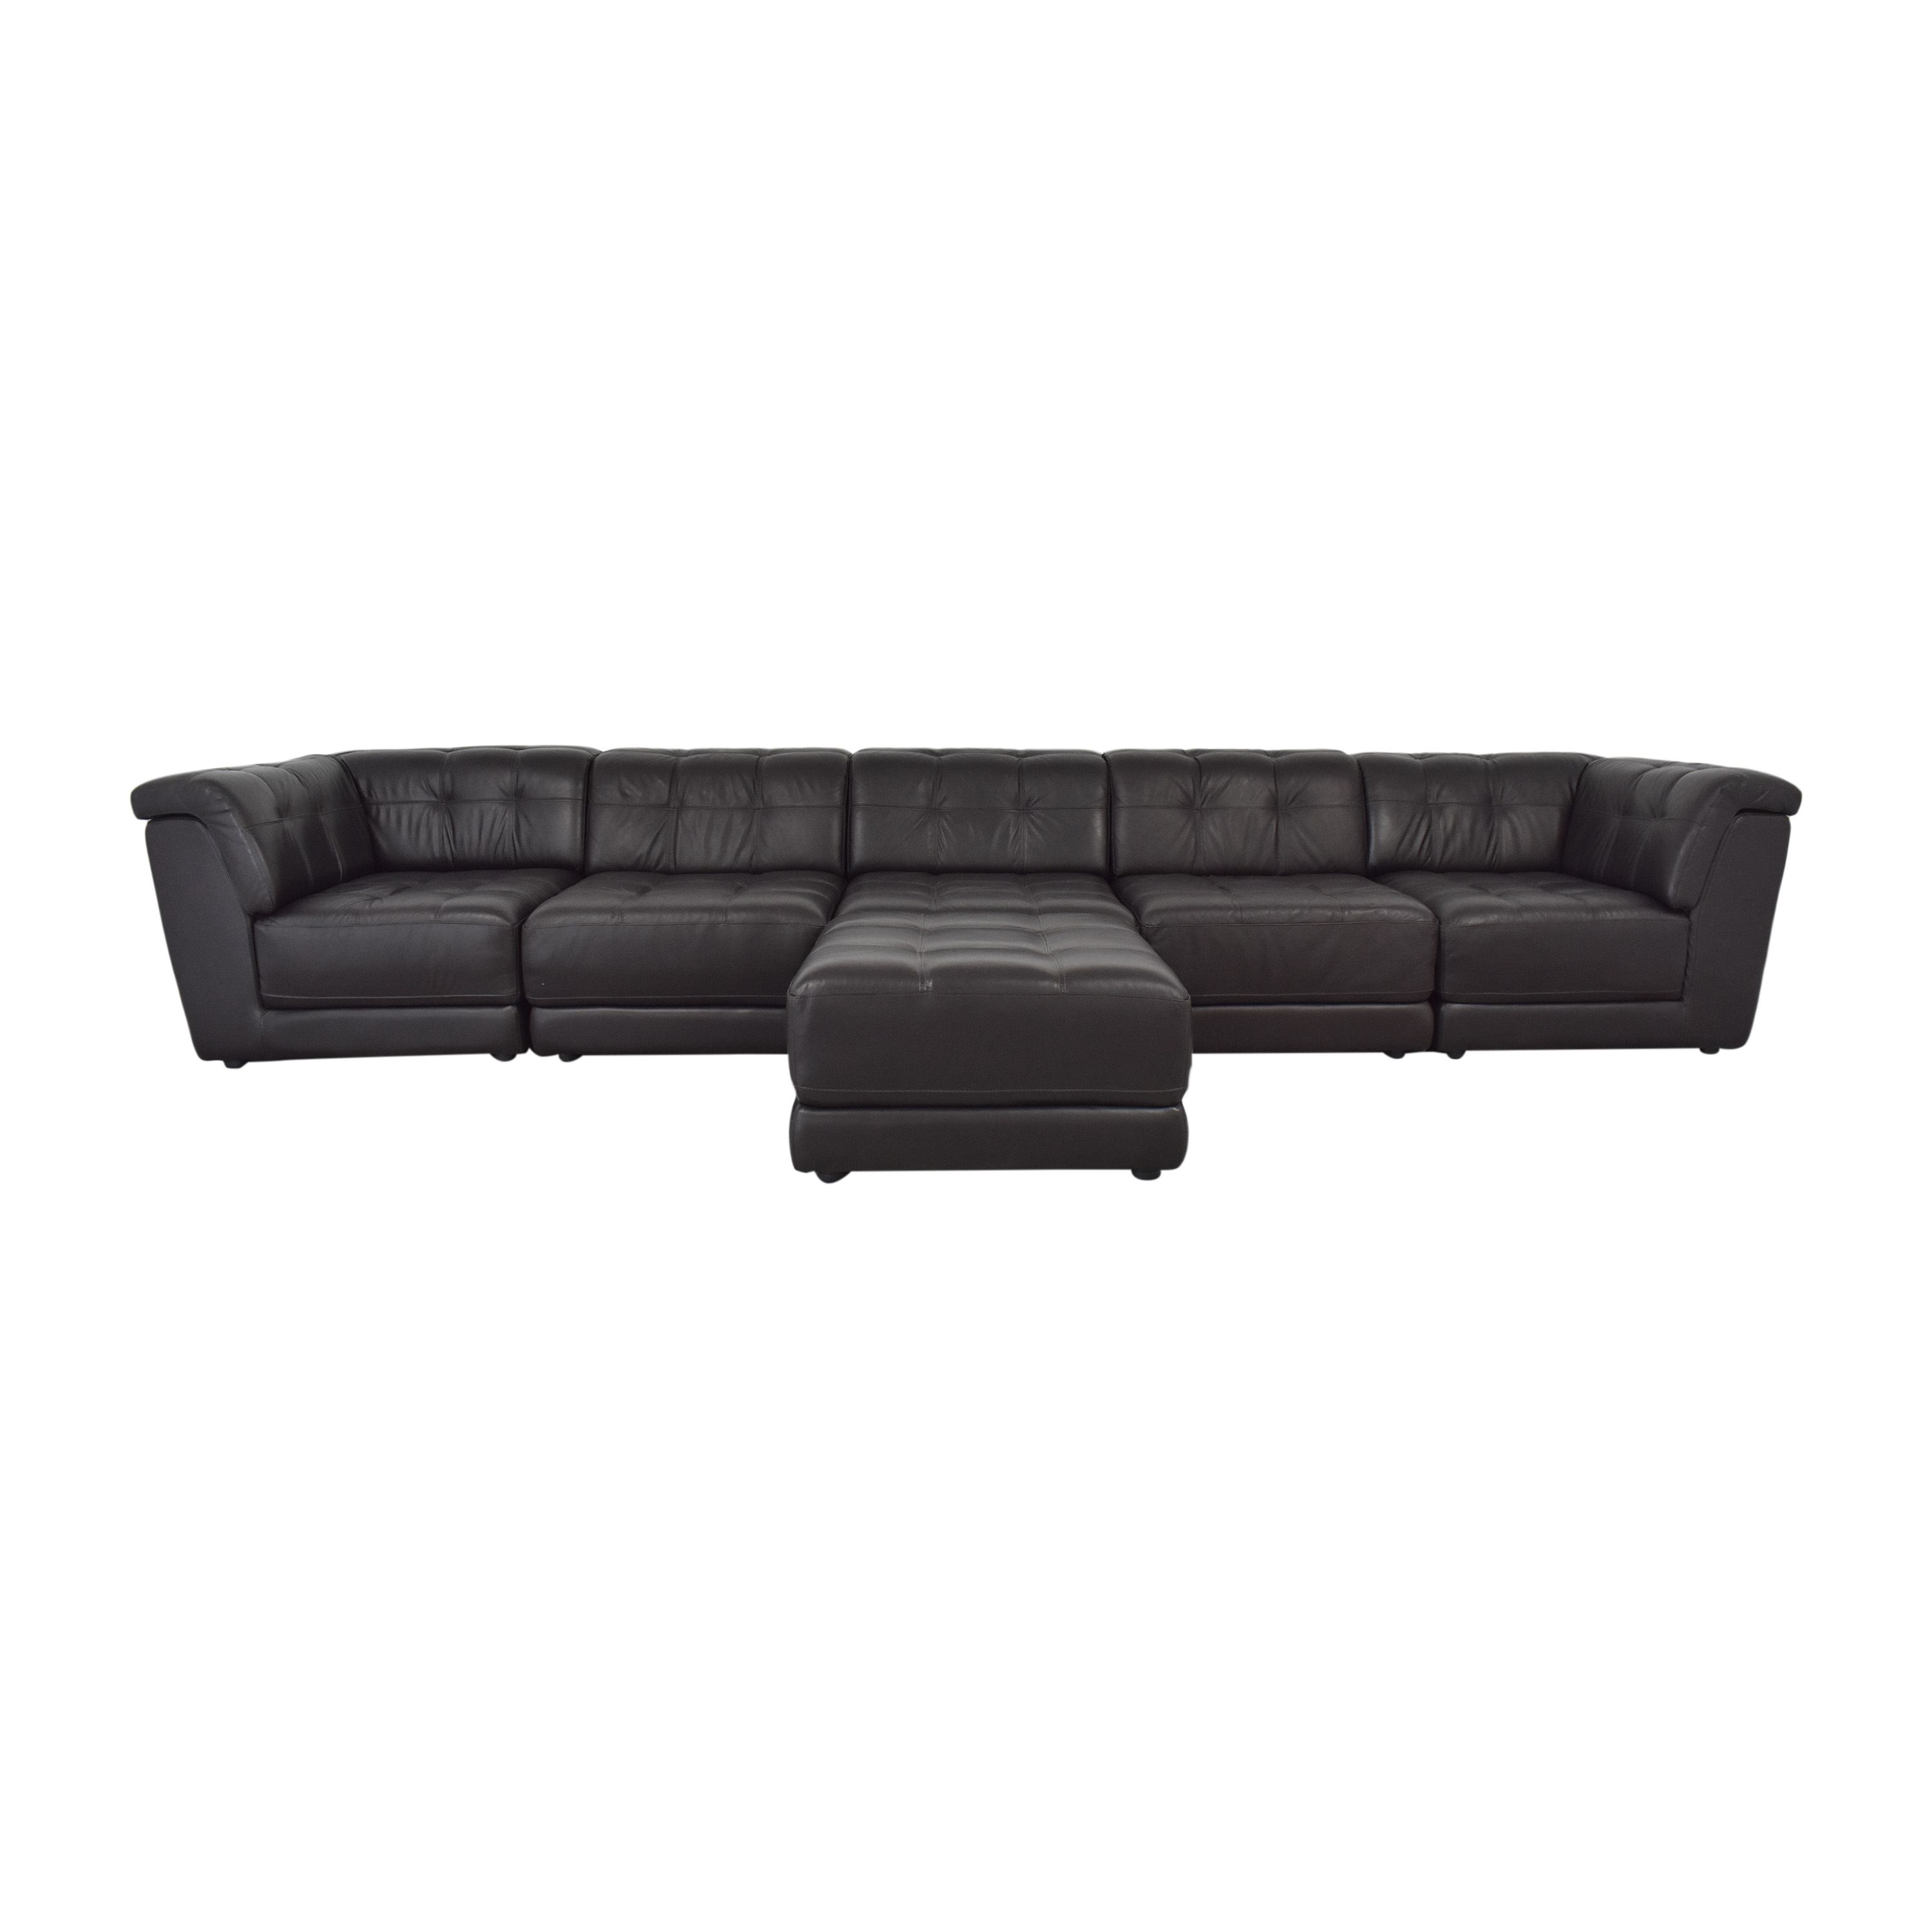 Chateau d'Ax Stacey Modular Sectional Sofa Chateau d'Ax